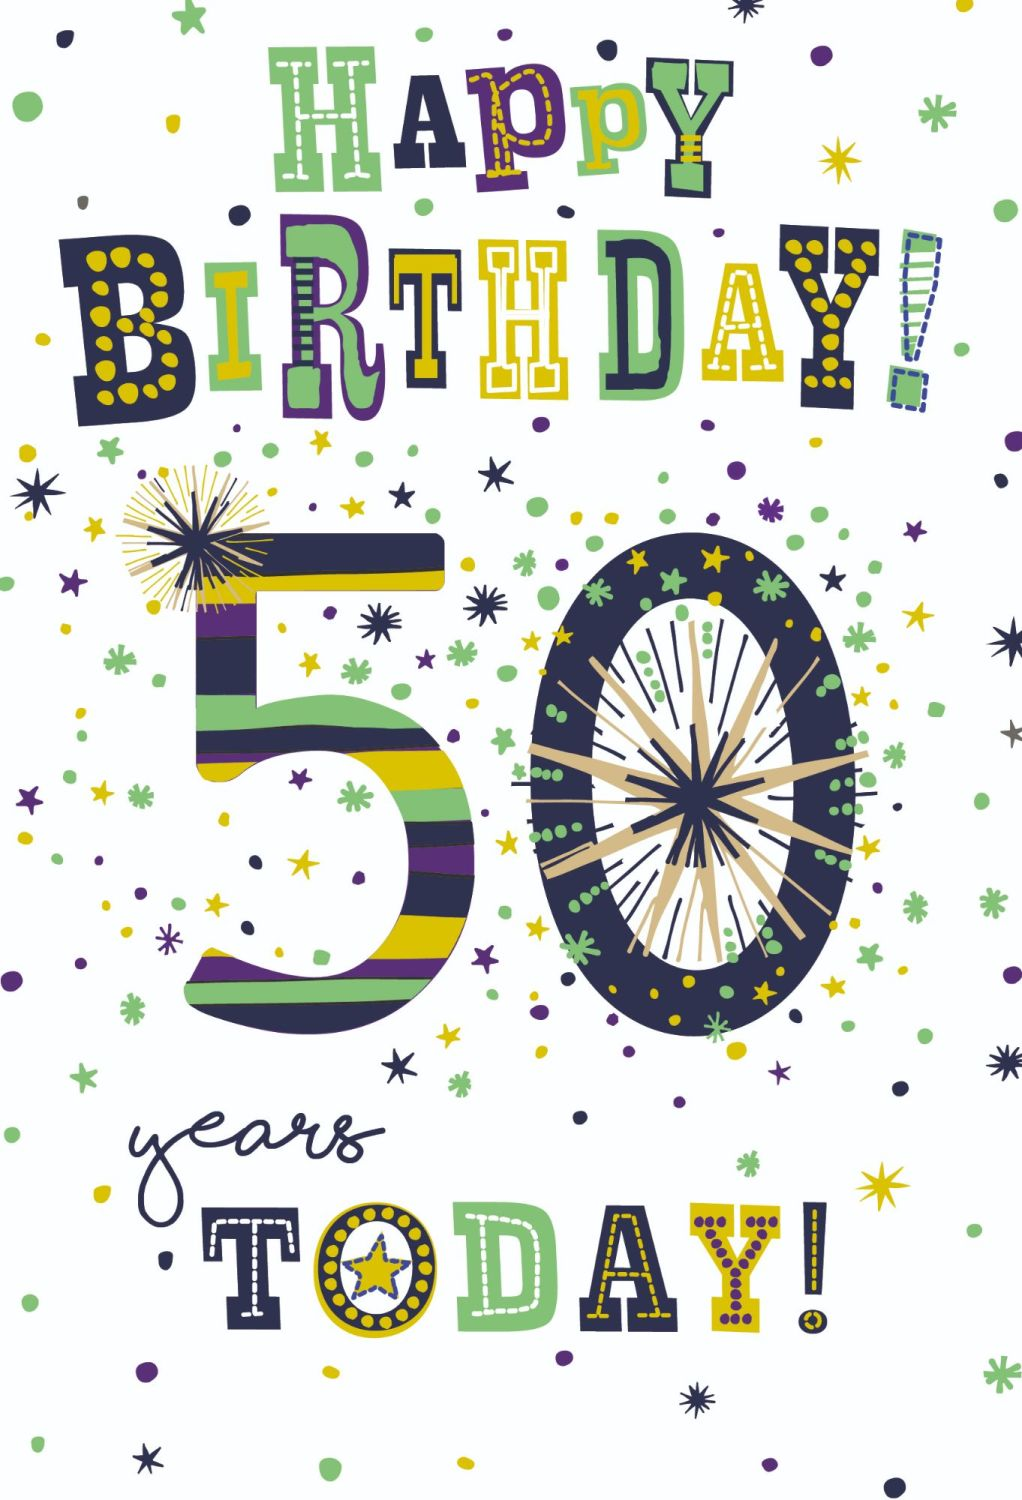 50th Birthday Cards For Him - 50 YEARS Today - BALLOONS Birthday CARD - 50t